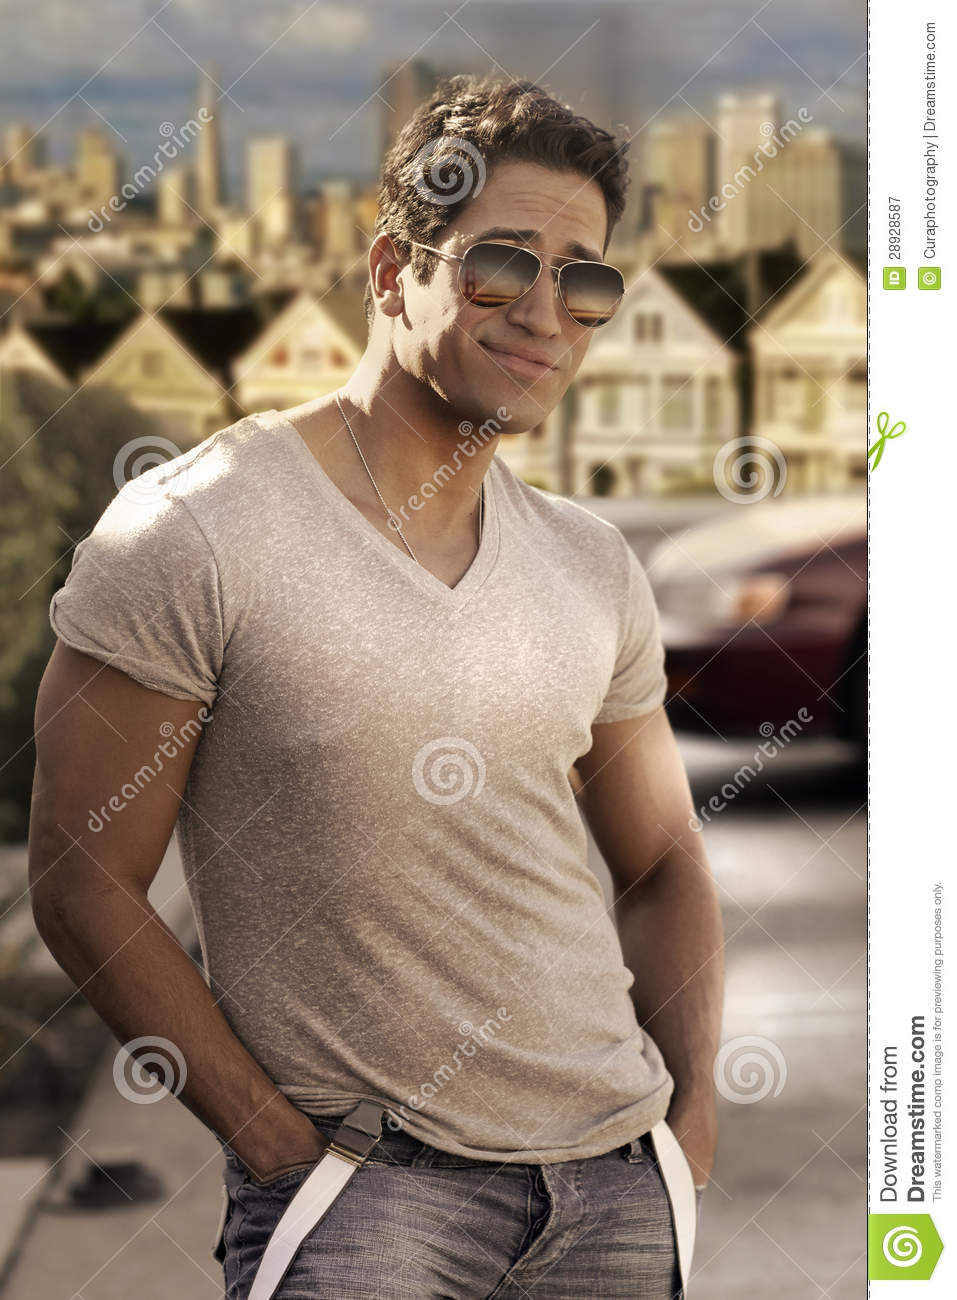 Cute Guy Sunglasses Attractive Stylish Young Model